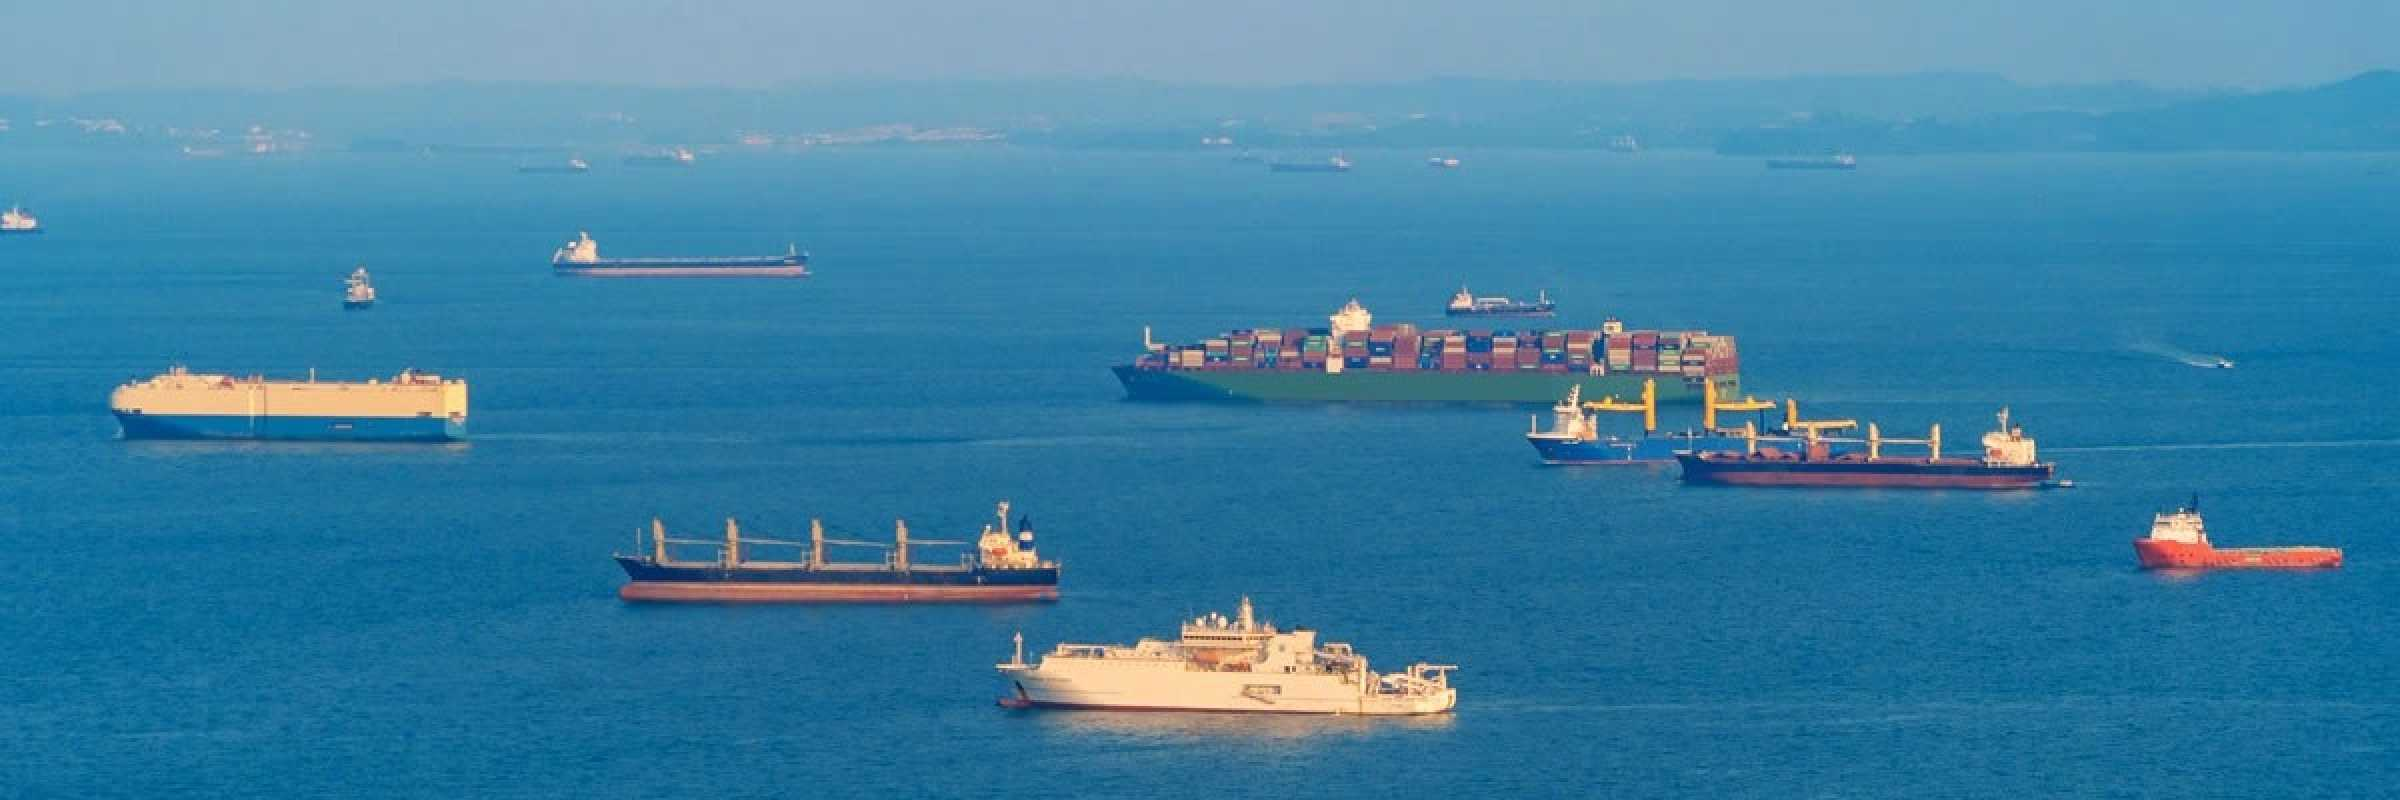 Singapore to ban open loop scrubber discharges